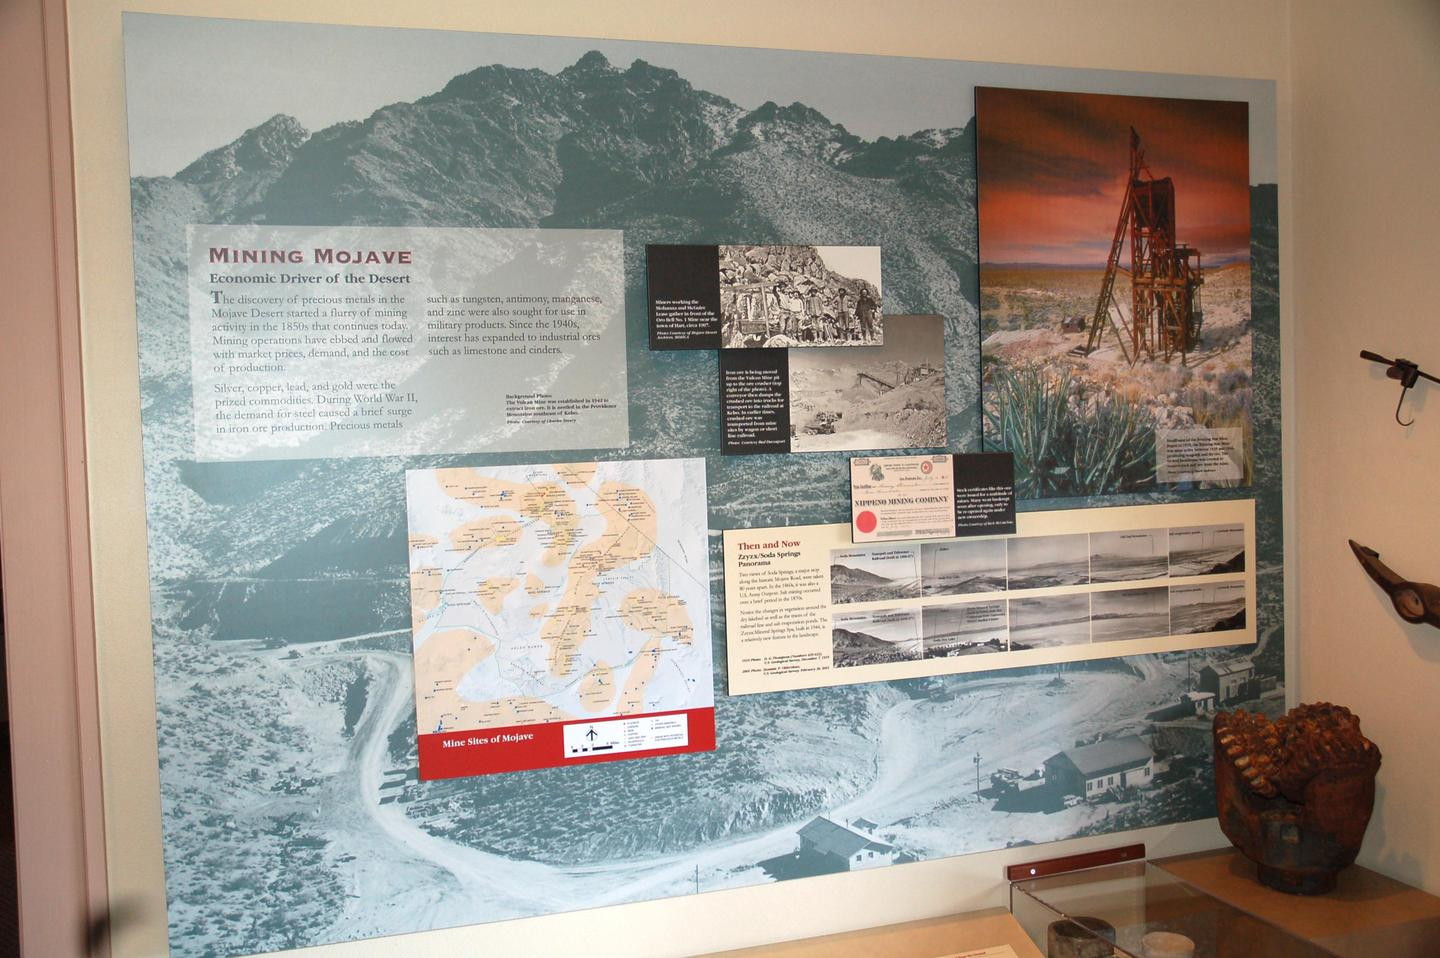 Mining exhibitExhibits in the Kelso Depot Museum are mostly wall-mounted. There are exhibits on mining, railroads, ranching, homesteading, and natural and cultural treasures within the Preserve